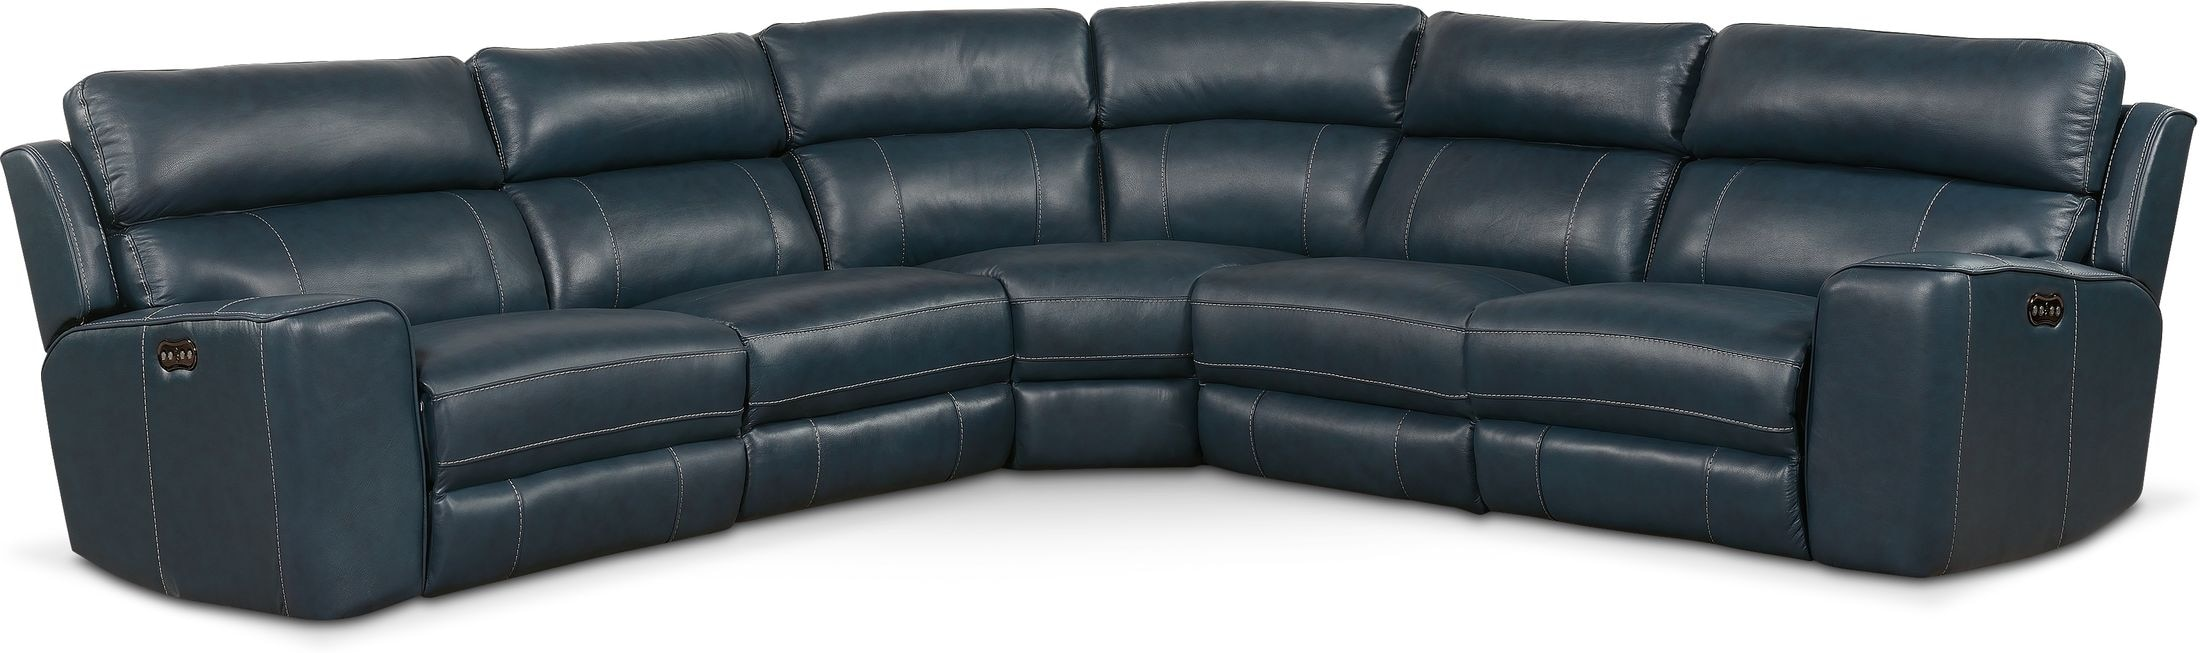 Living Room Furniture - Newport 5-Piece Dual-Power Reclining Sectional with 3 Reclining Seats